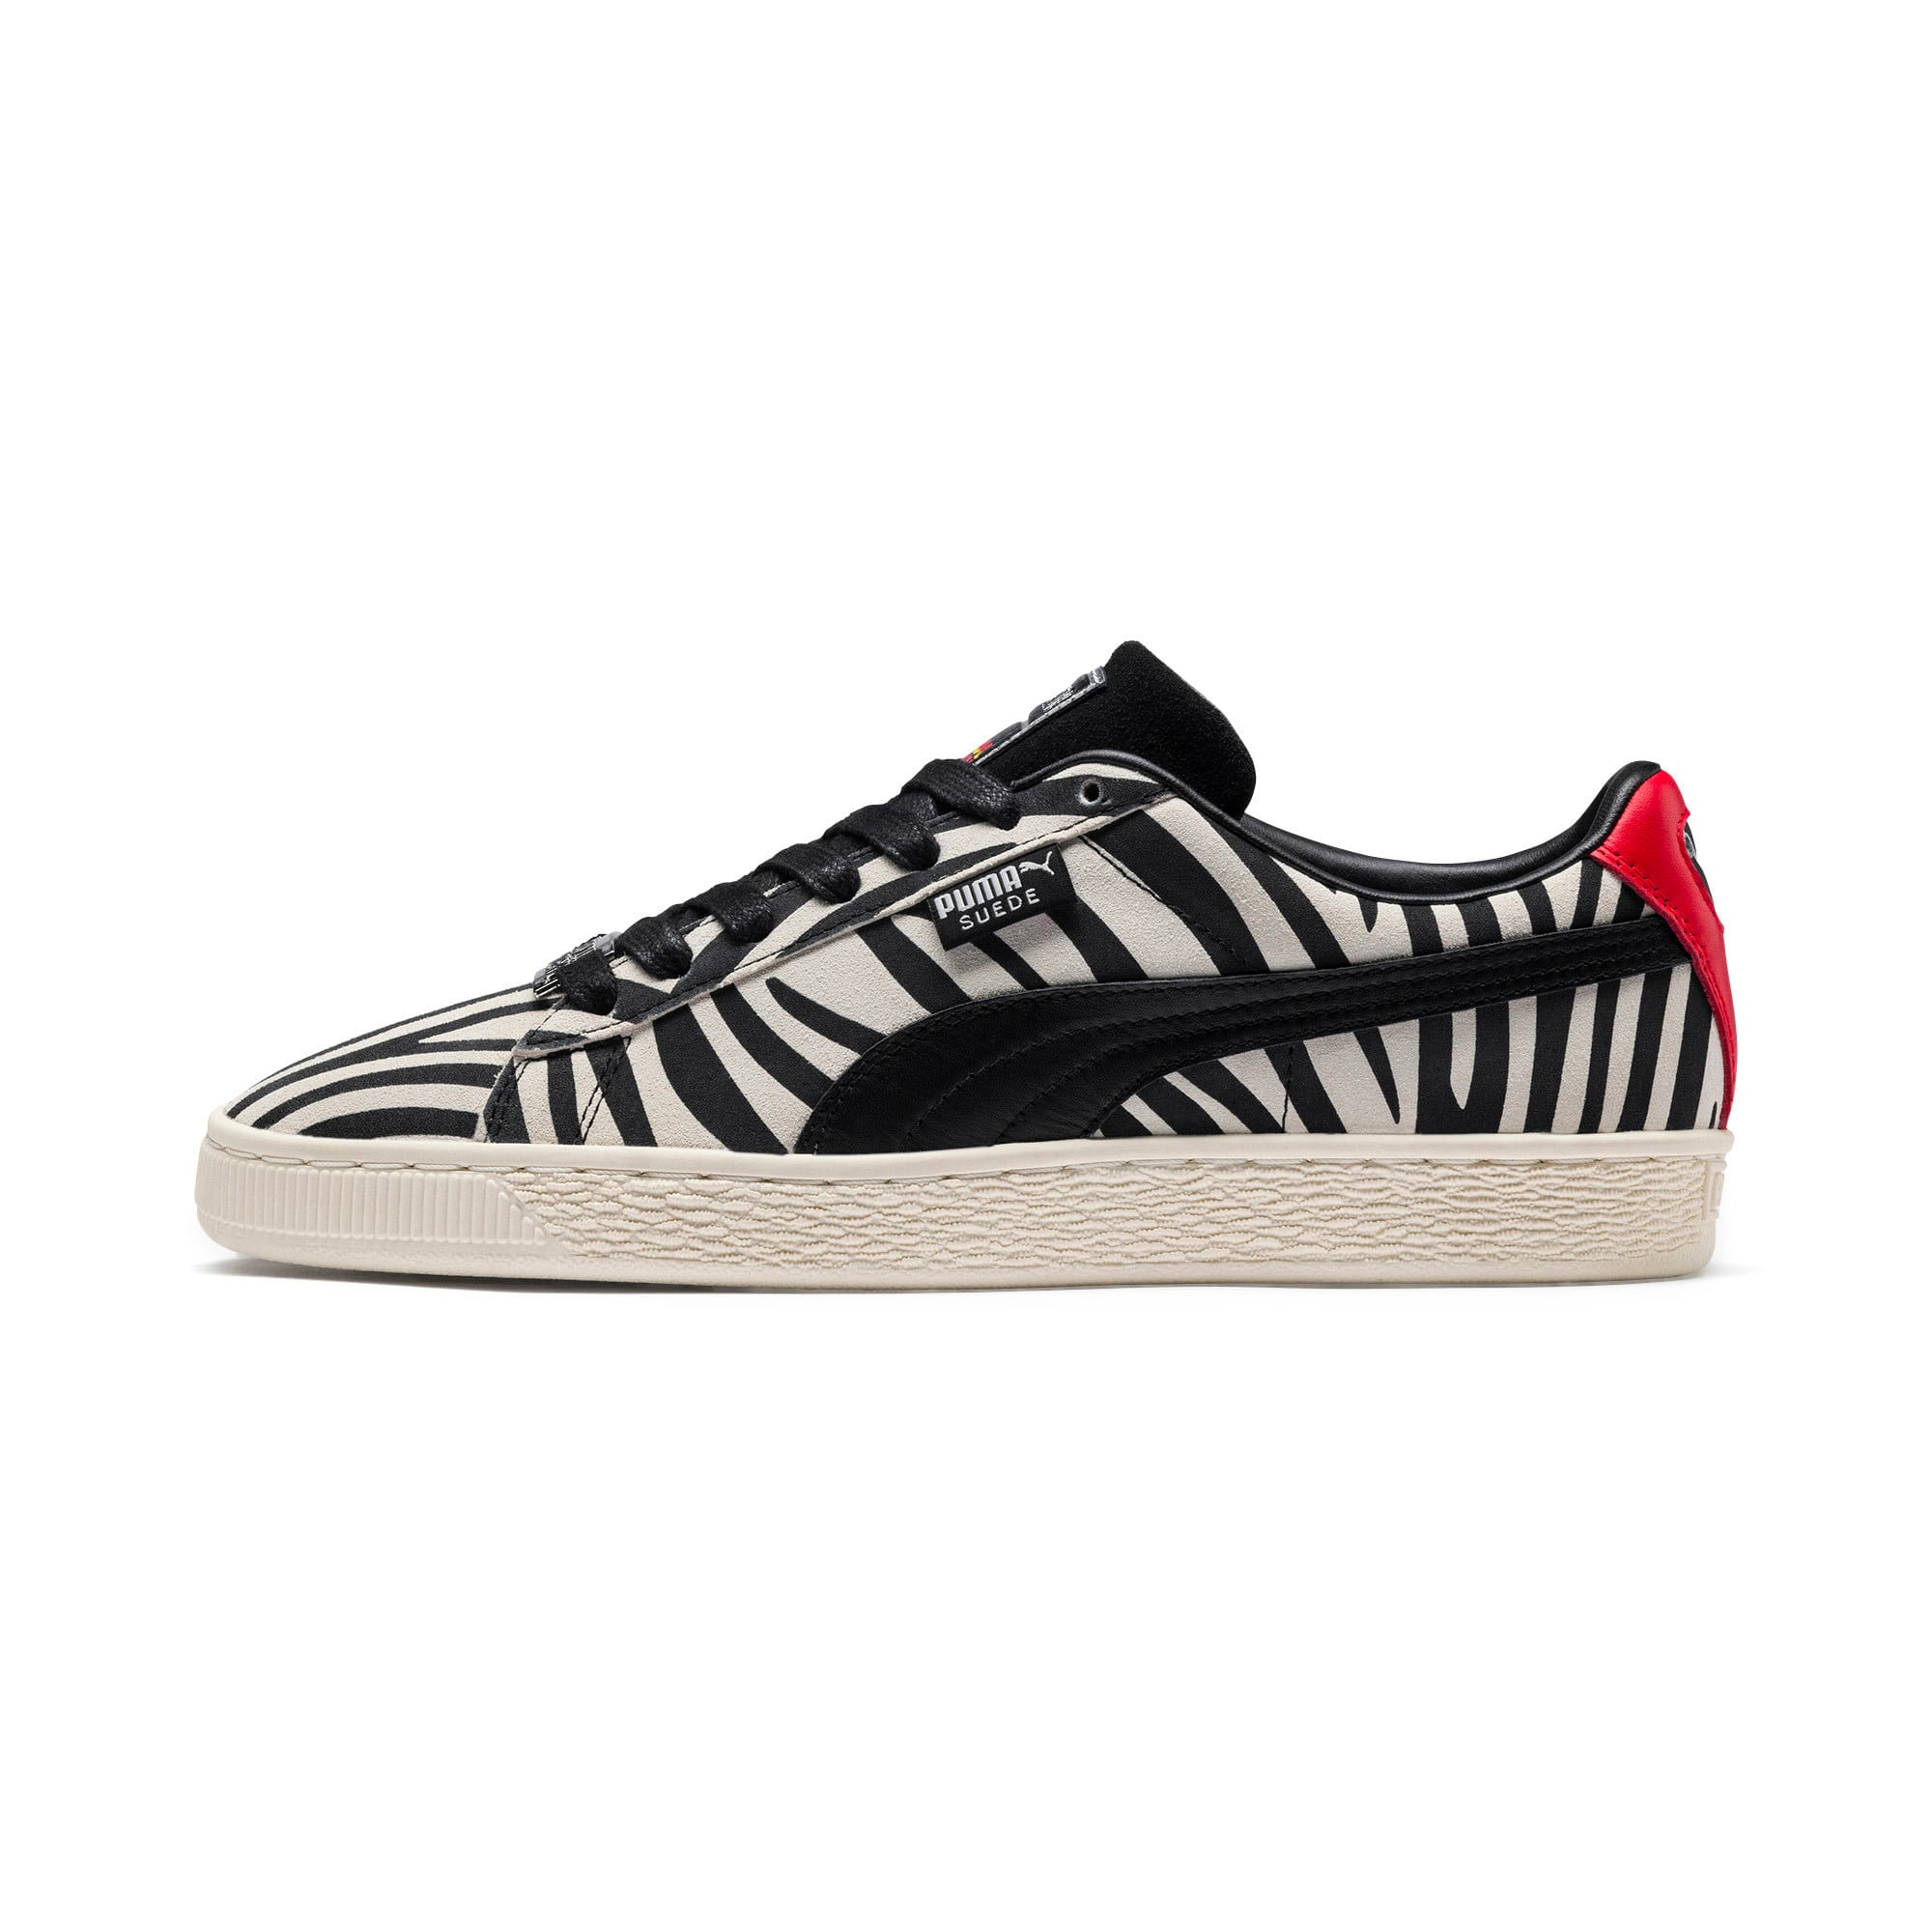 Thumbnail 1 of PUMA x Paul Stanley Suede Men's Sneakers, Puma White-Puma Black, medium